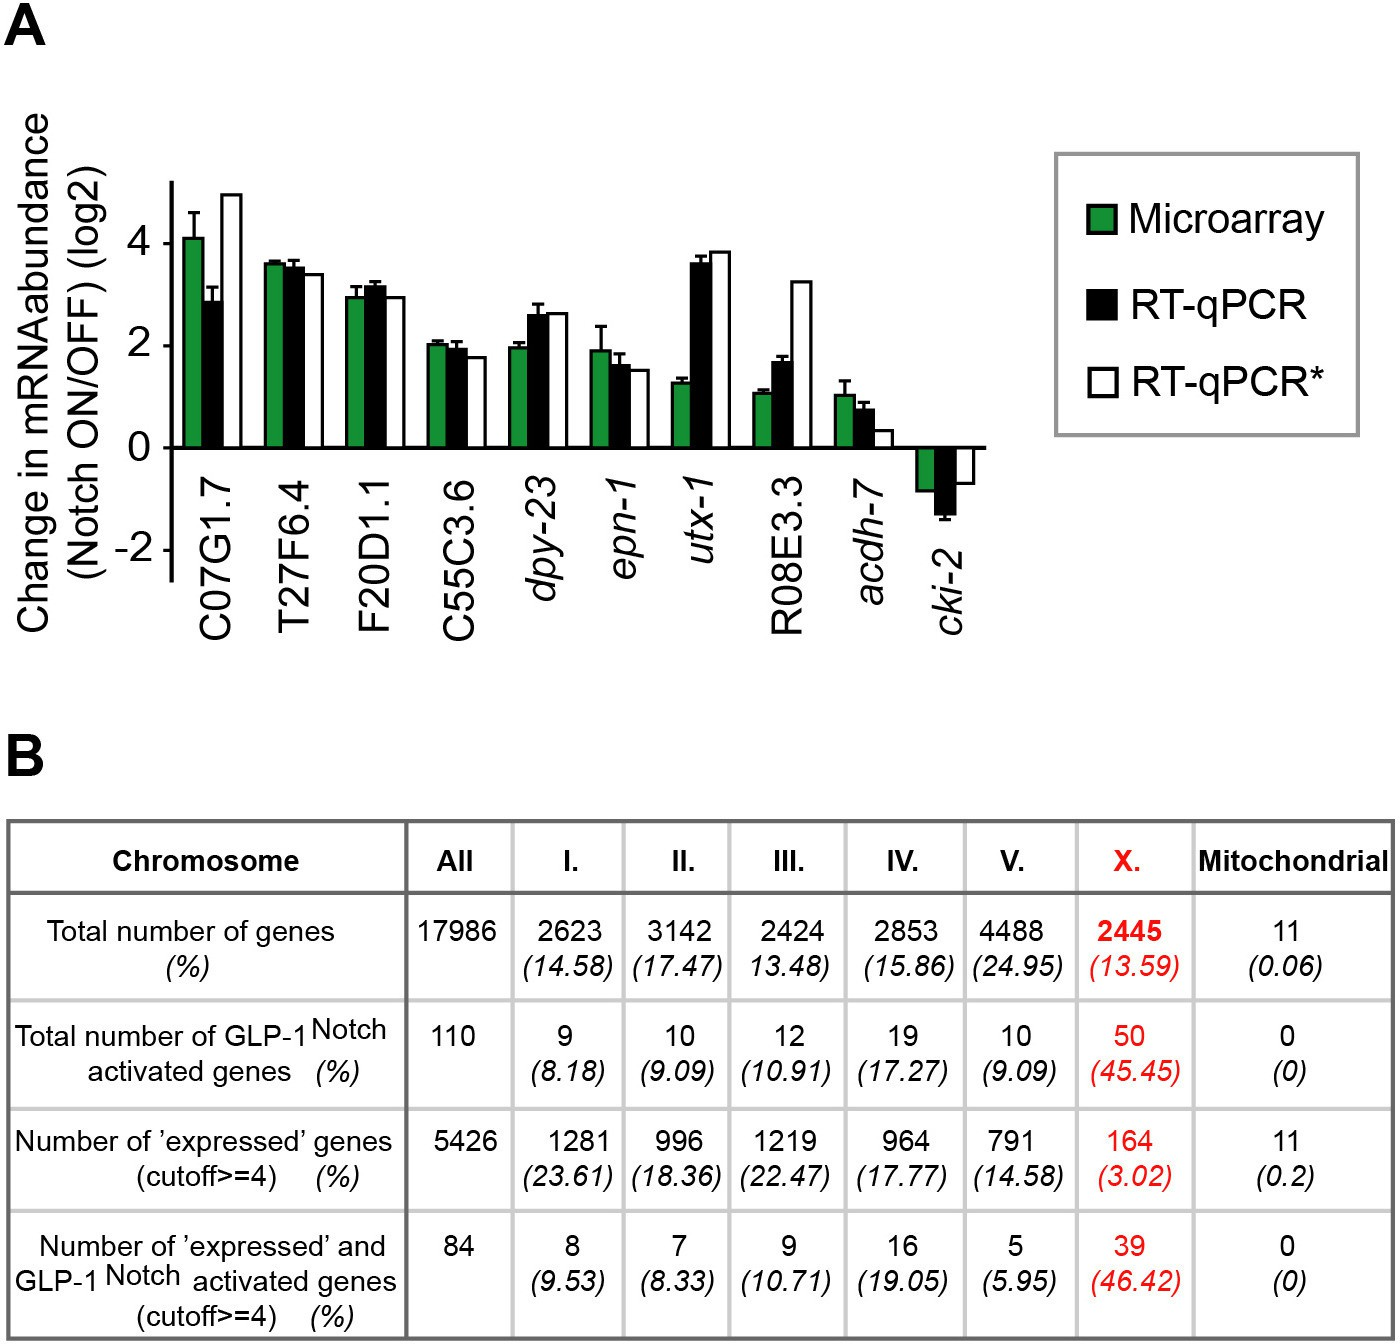 Increasing Notch Signaling Antagonizes Prc2 Mediated Silencing To Ford Fusion V6 3 0 Fuse 48 Diagram Analysis Of Activated Genes